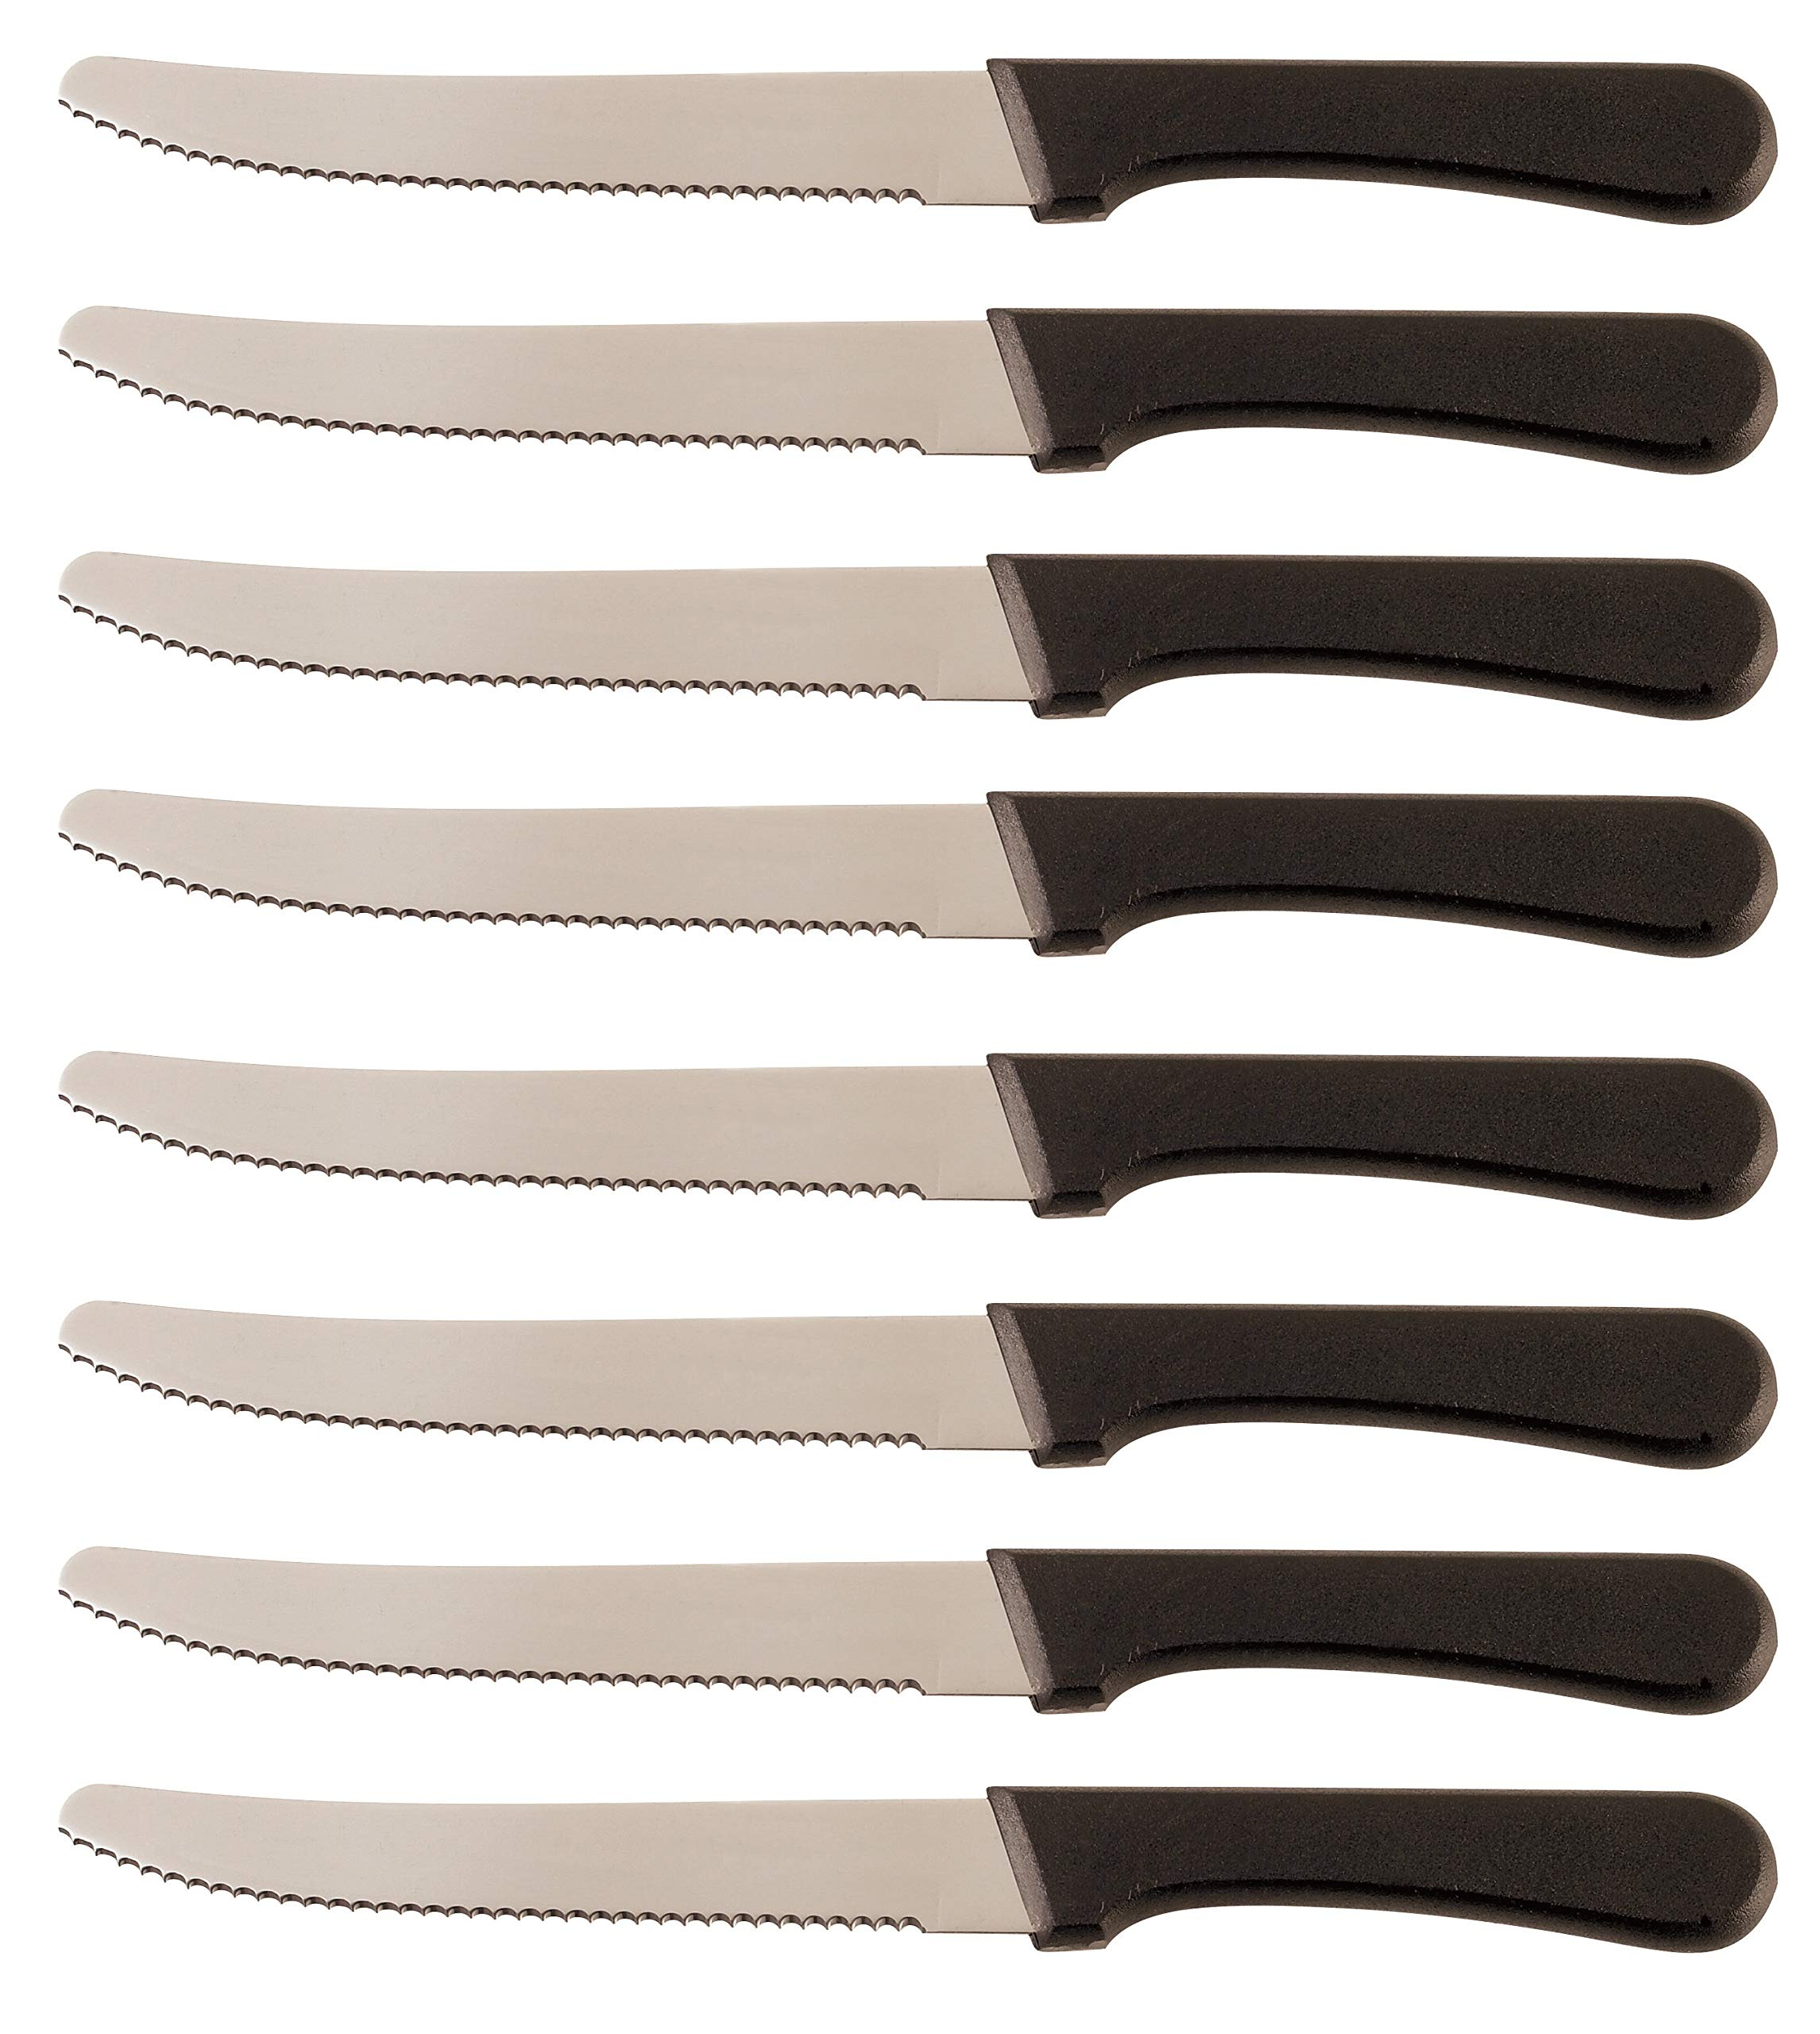 Steak Knives Serrated Set, Restaurant Quality, Stainless Steel, 4.25-Inch, Rounded Tip, Set of 8 (8) by Cooking on Mars